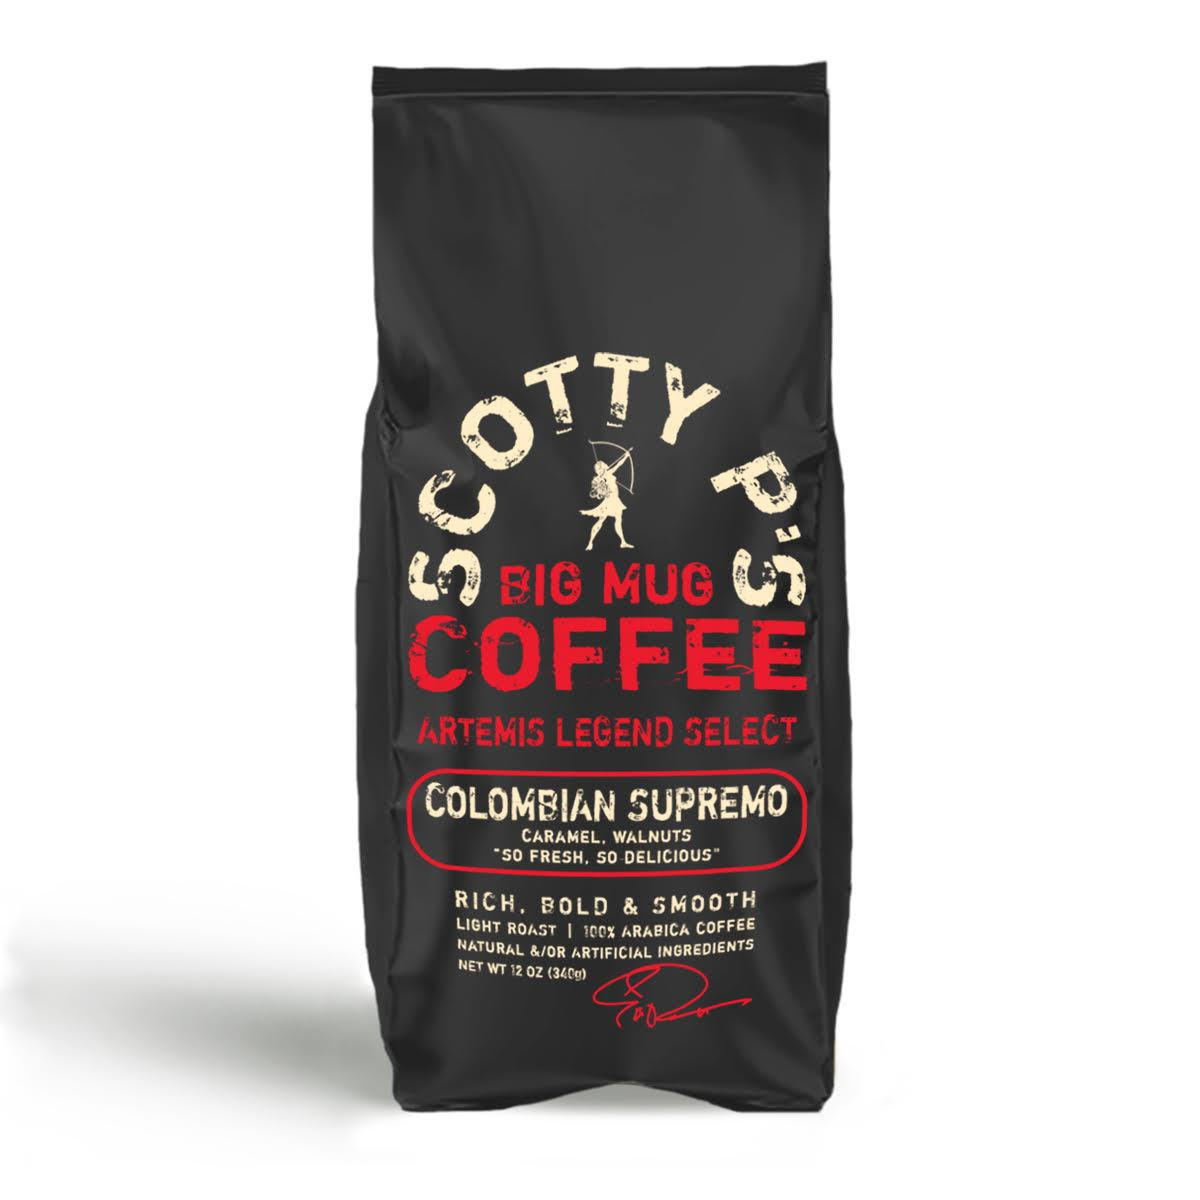 COLOMBIAN SUPREMO GROUND - 12 oz/2 lb/5 lb bags starting at